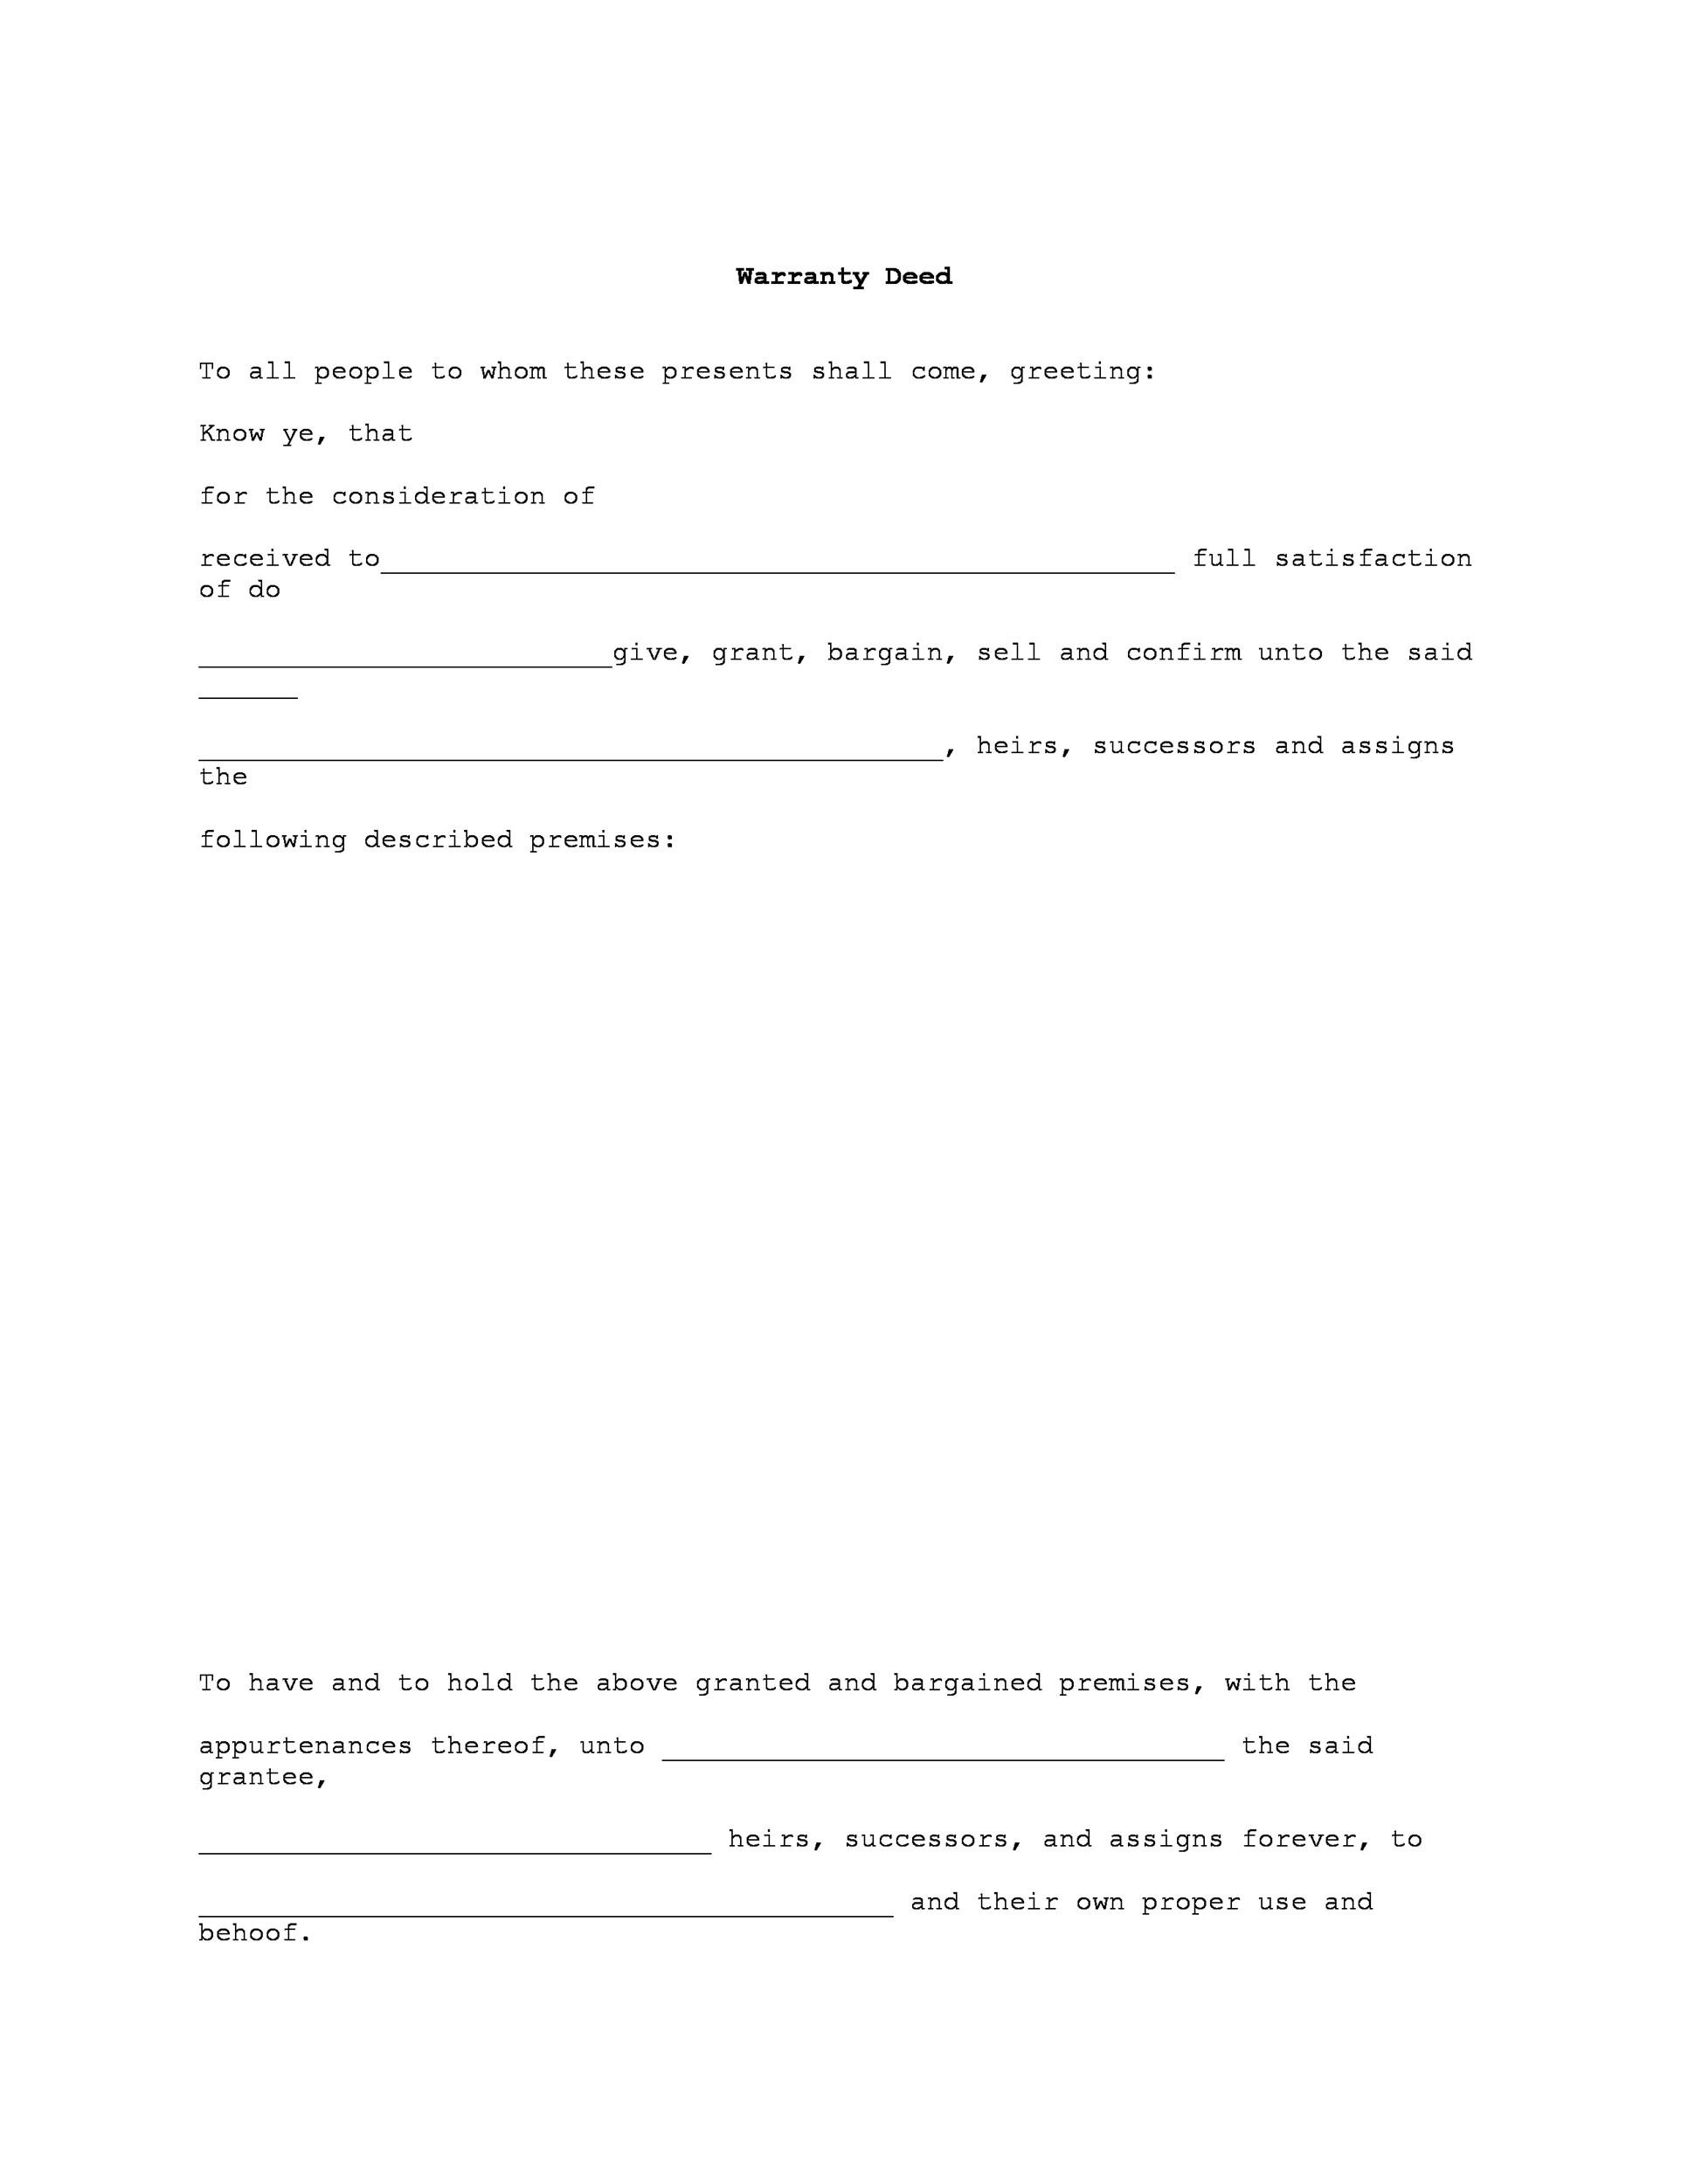 Free Warranty deed template 29